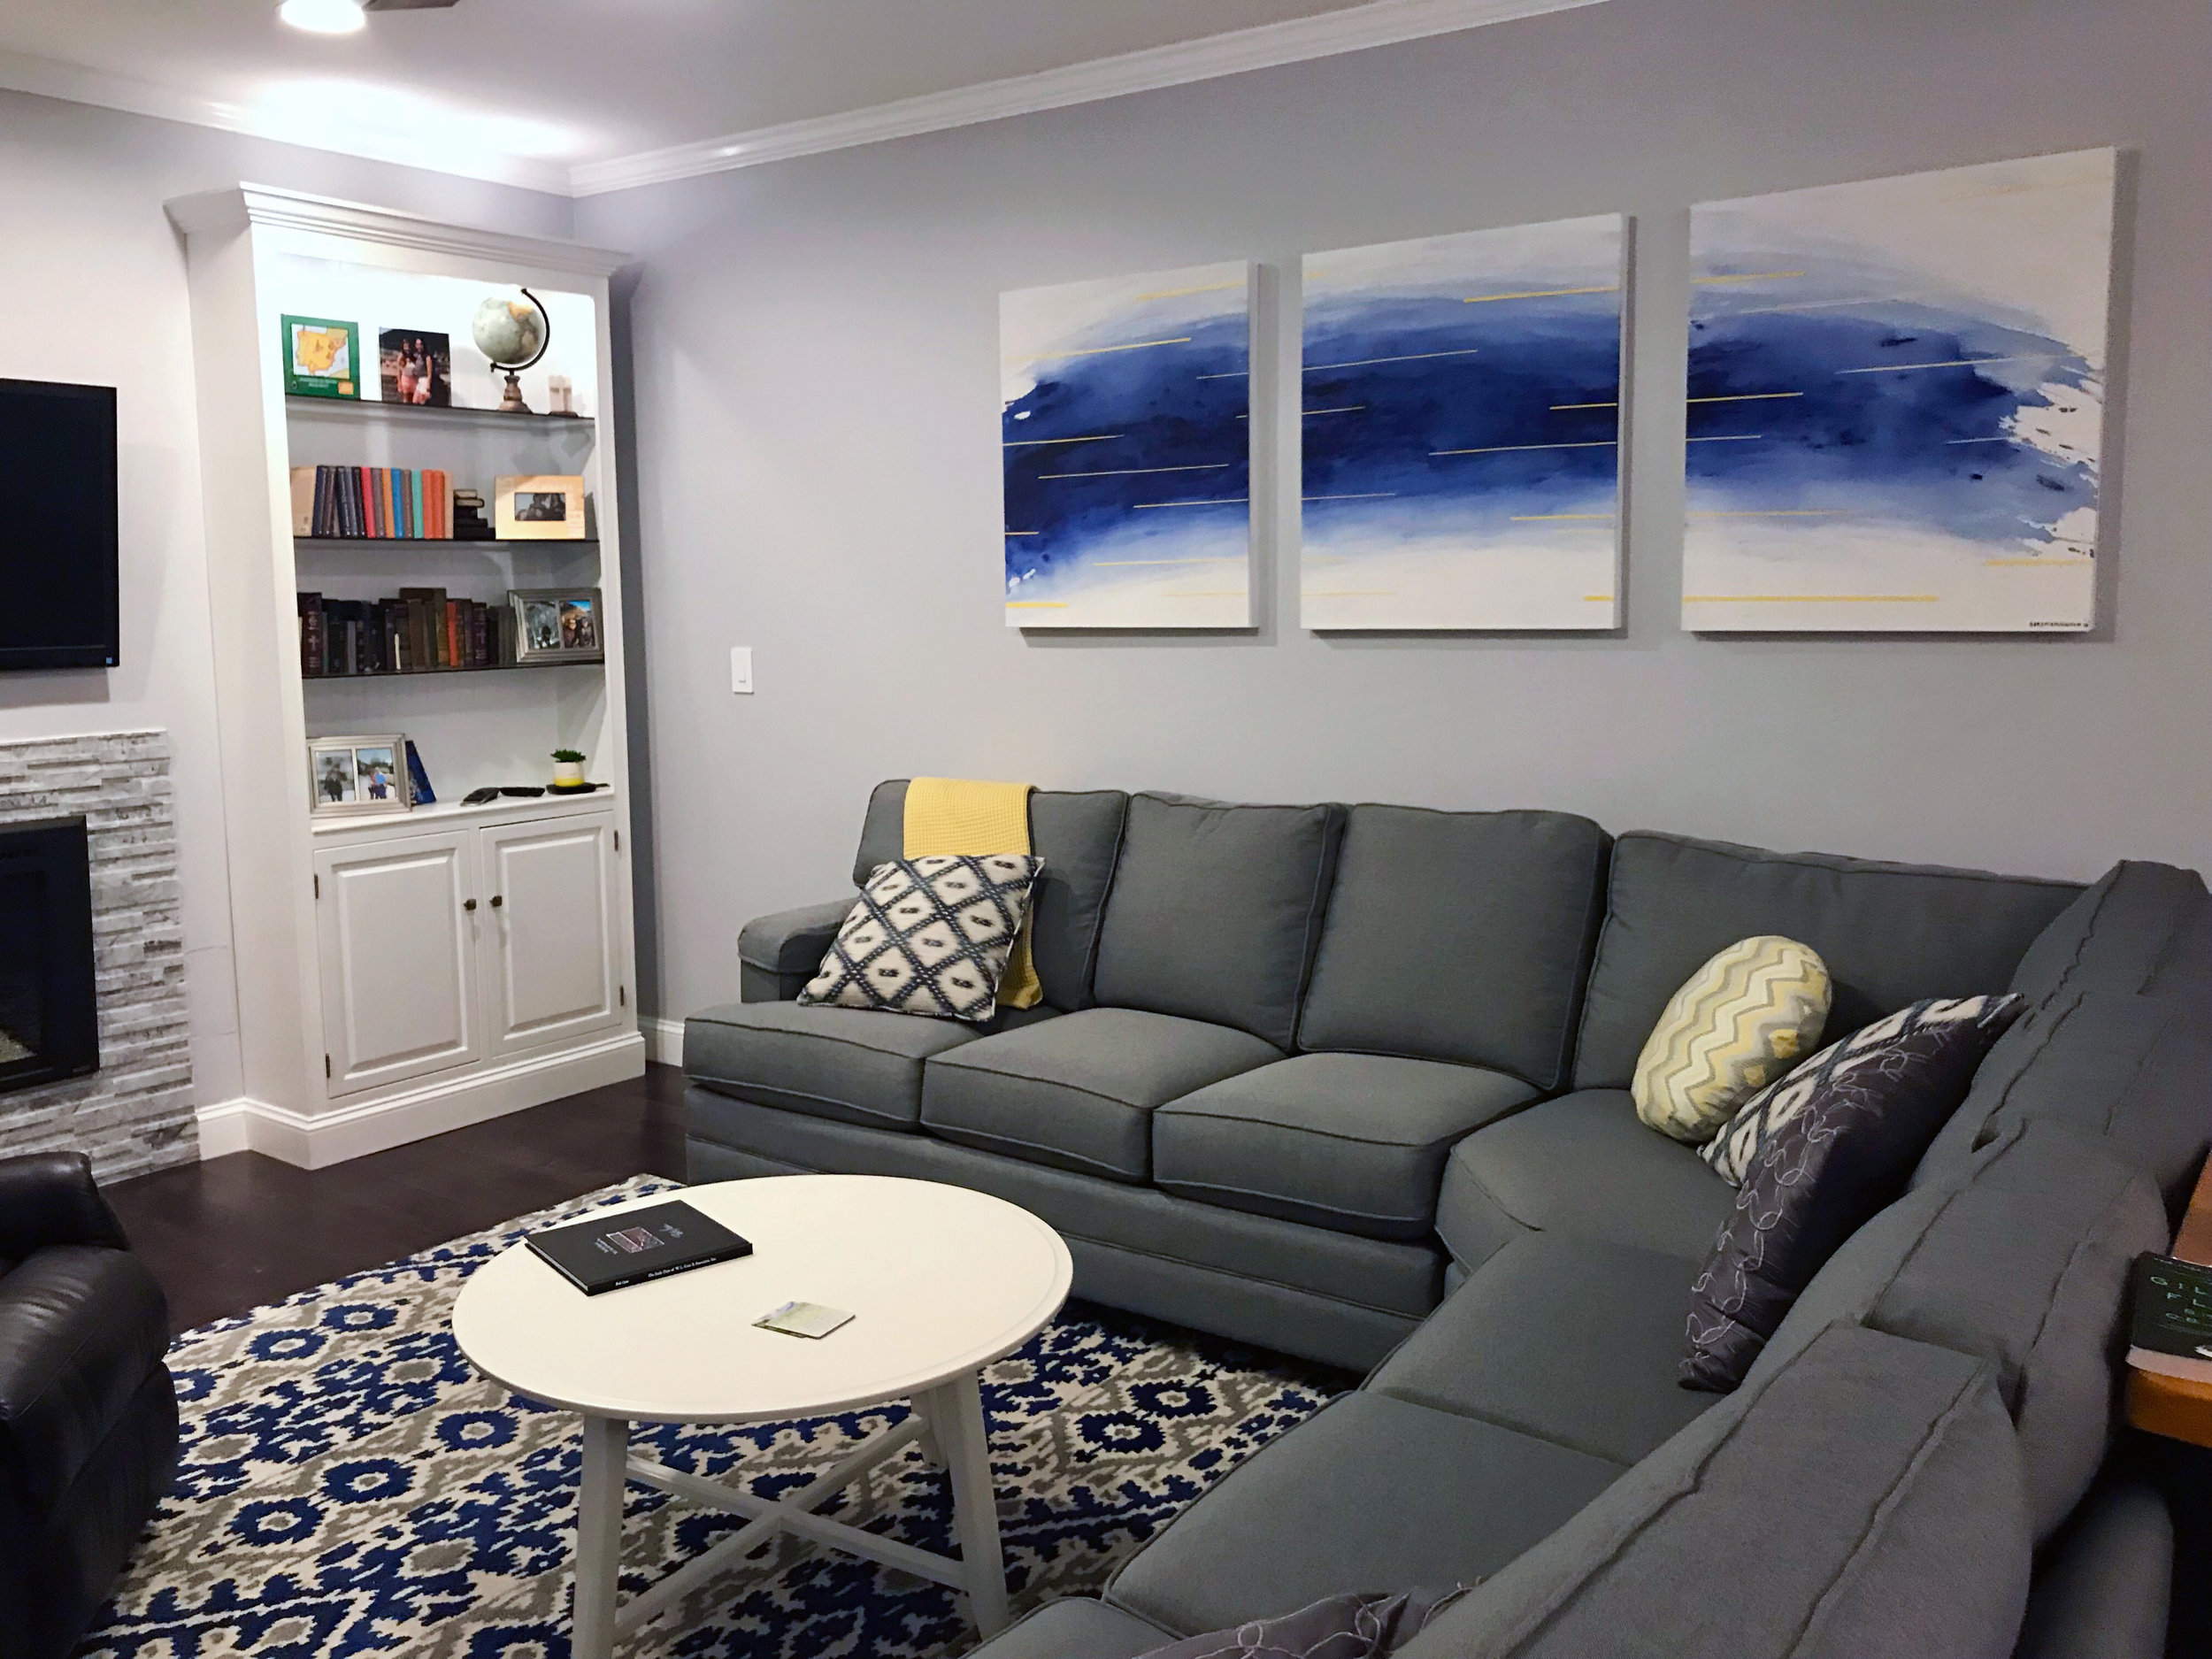 The finished panels make a great focal point in their newly renovated living room!